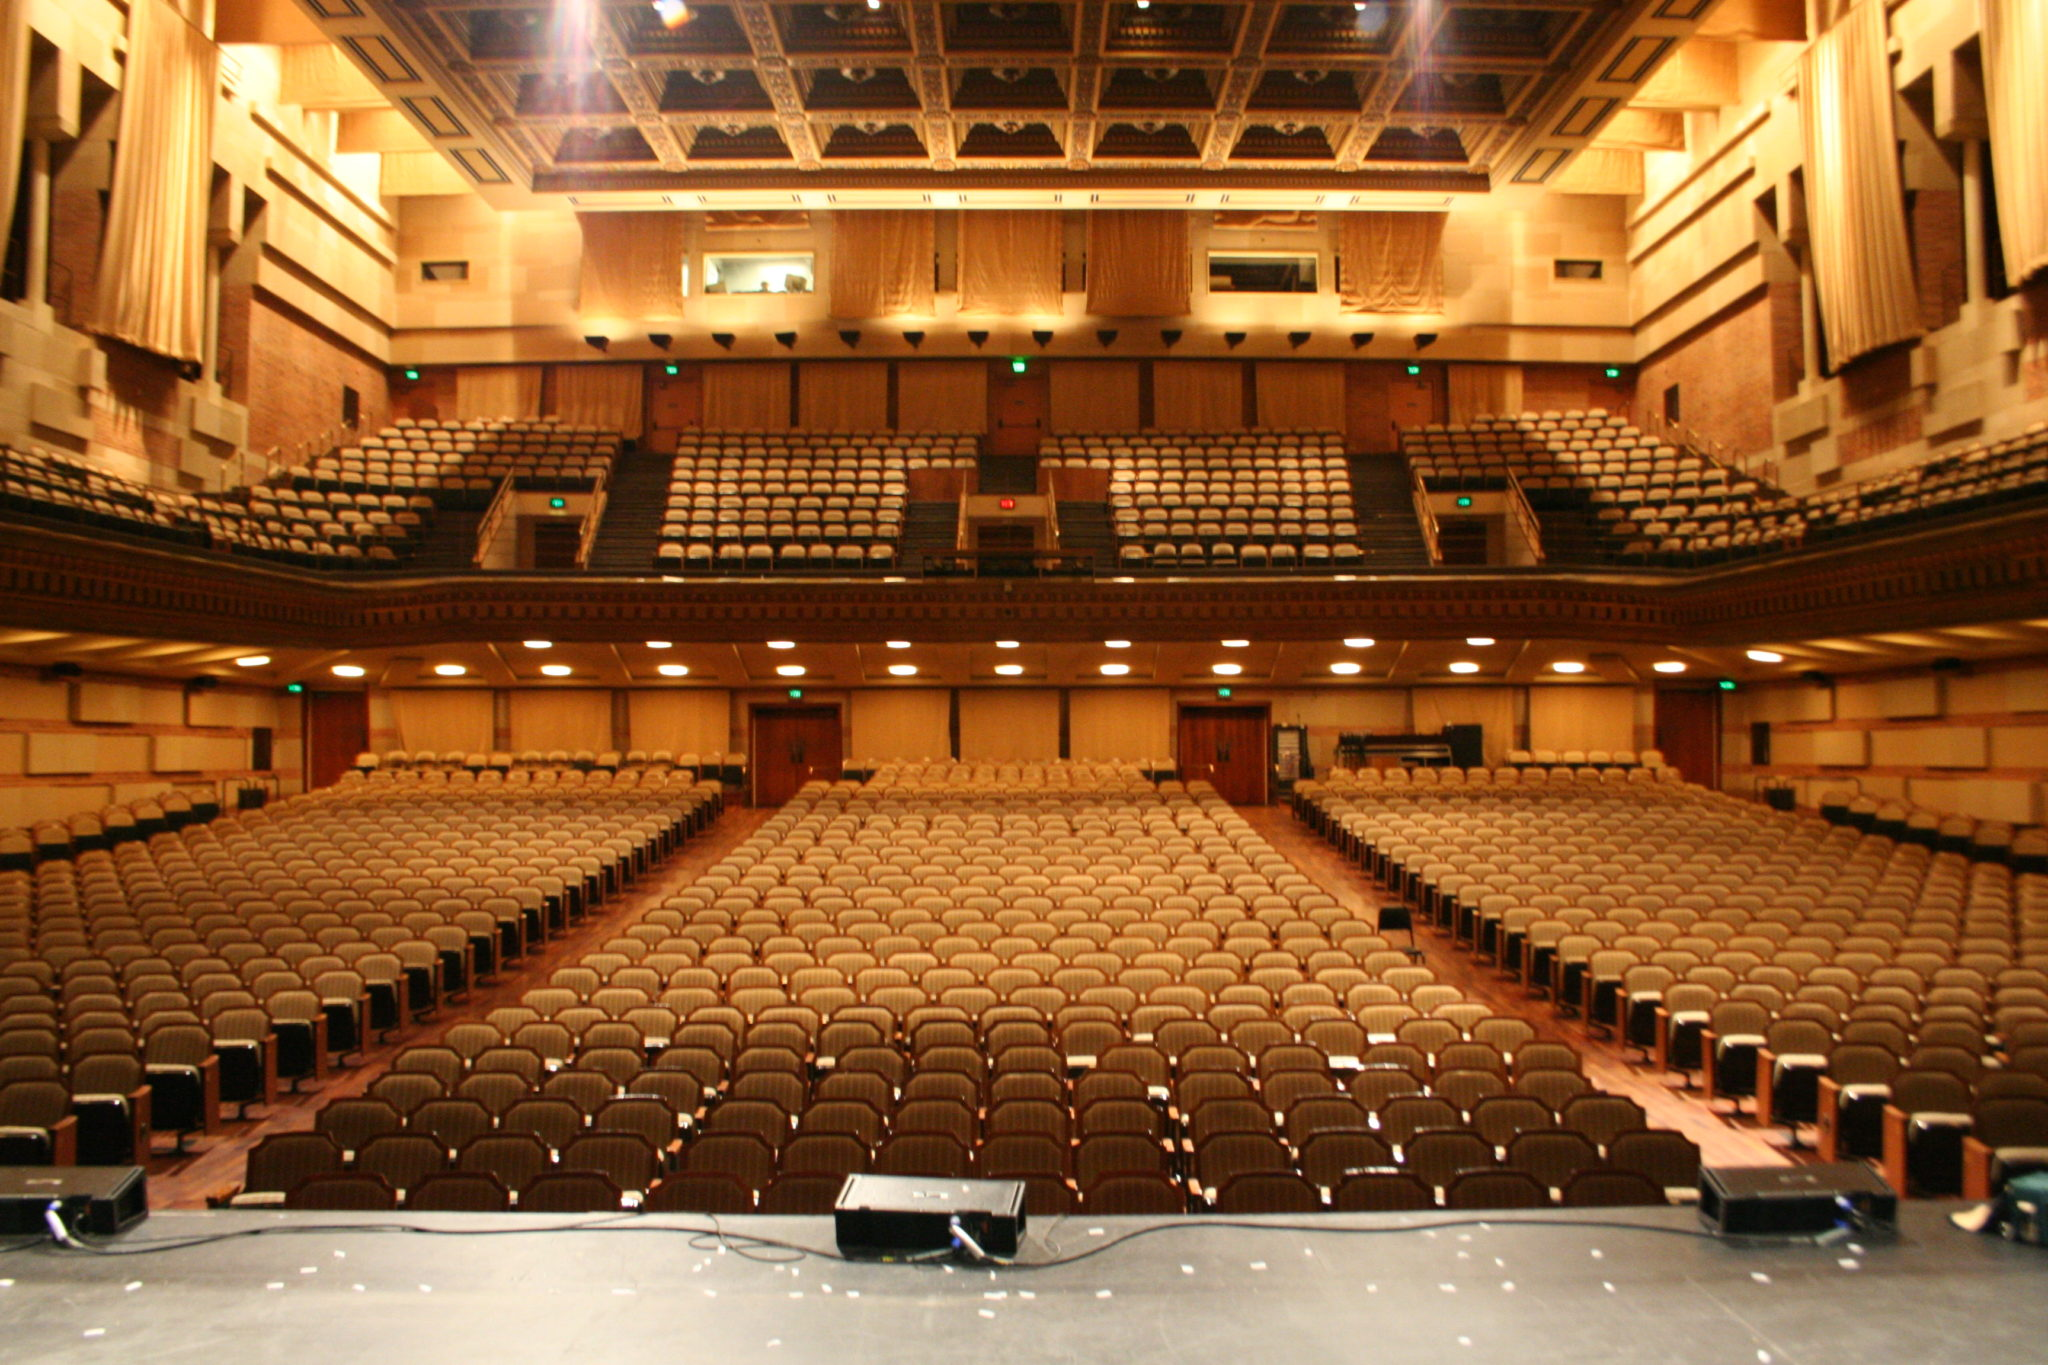 Royce Hall Seating Areas and How to Choose Them